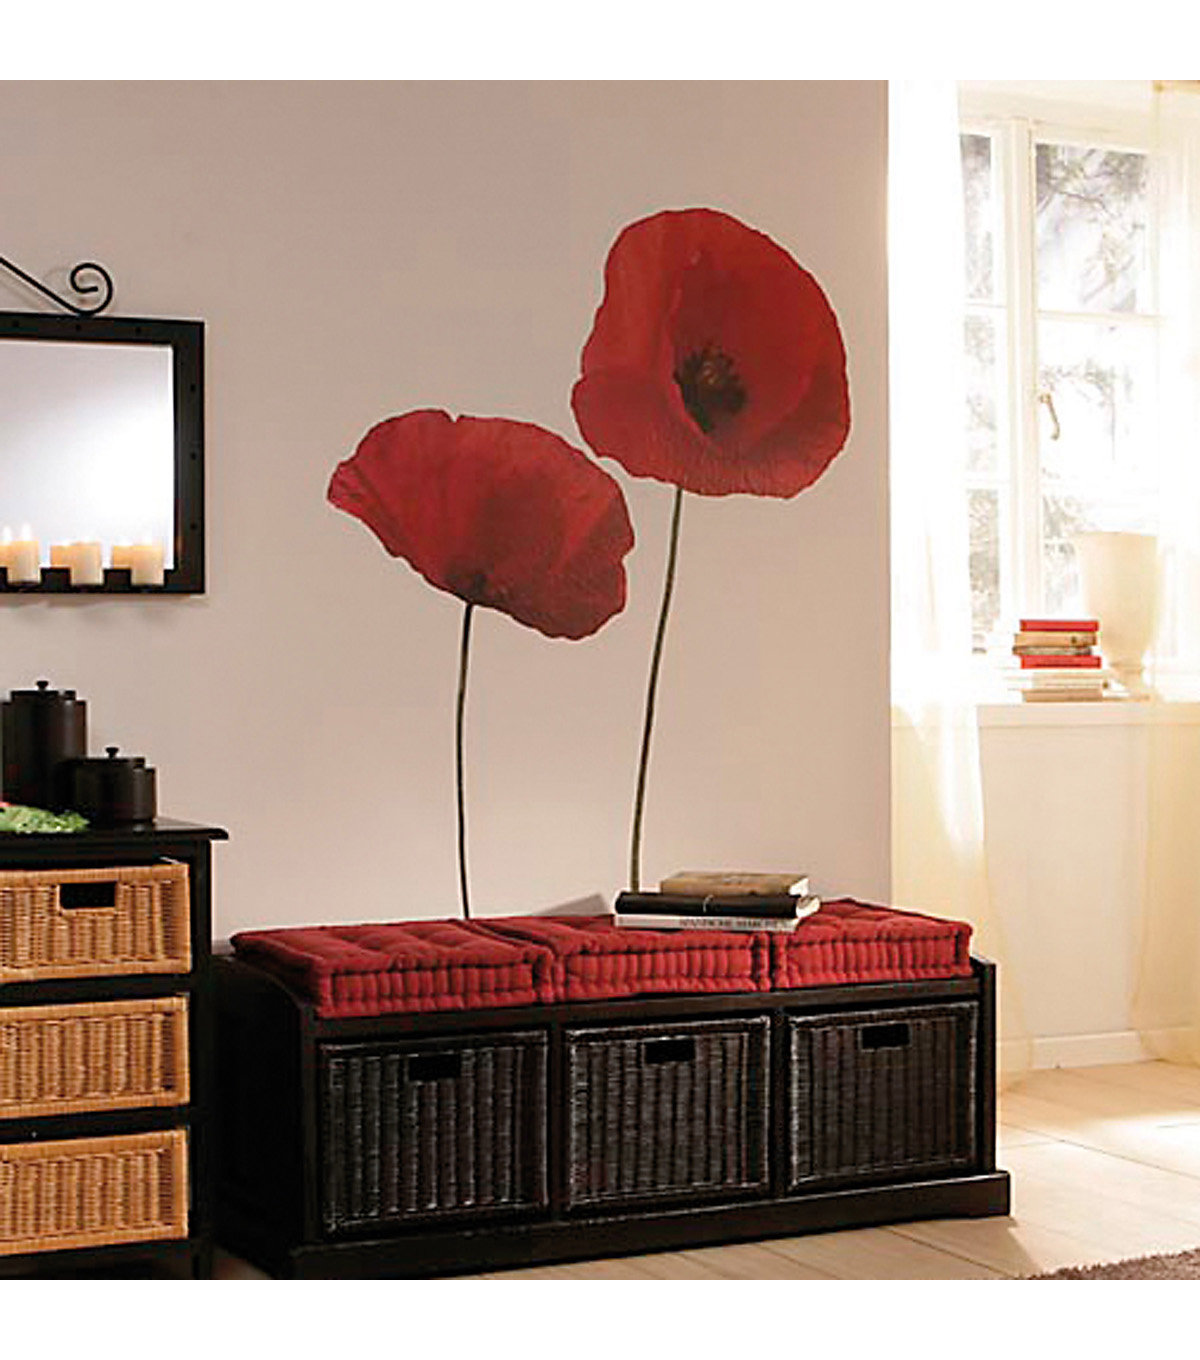 Home Decor Poppies Wall Decal, 4 Piece Set